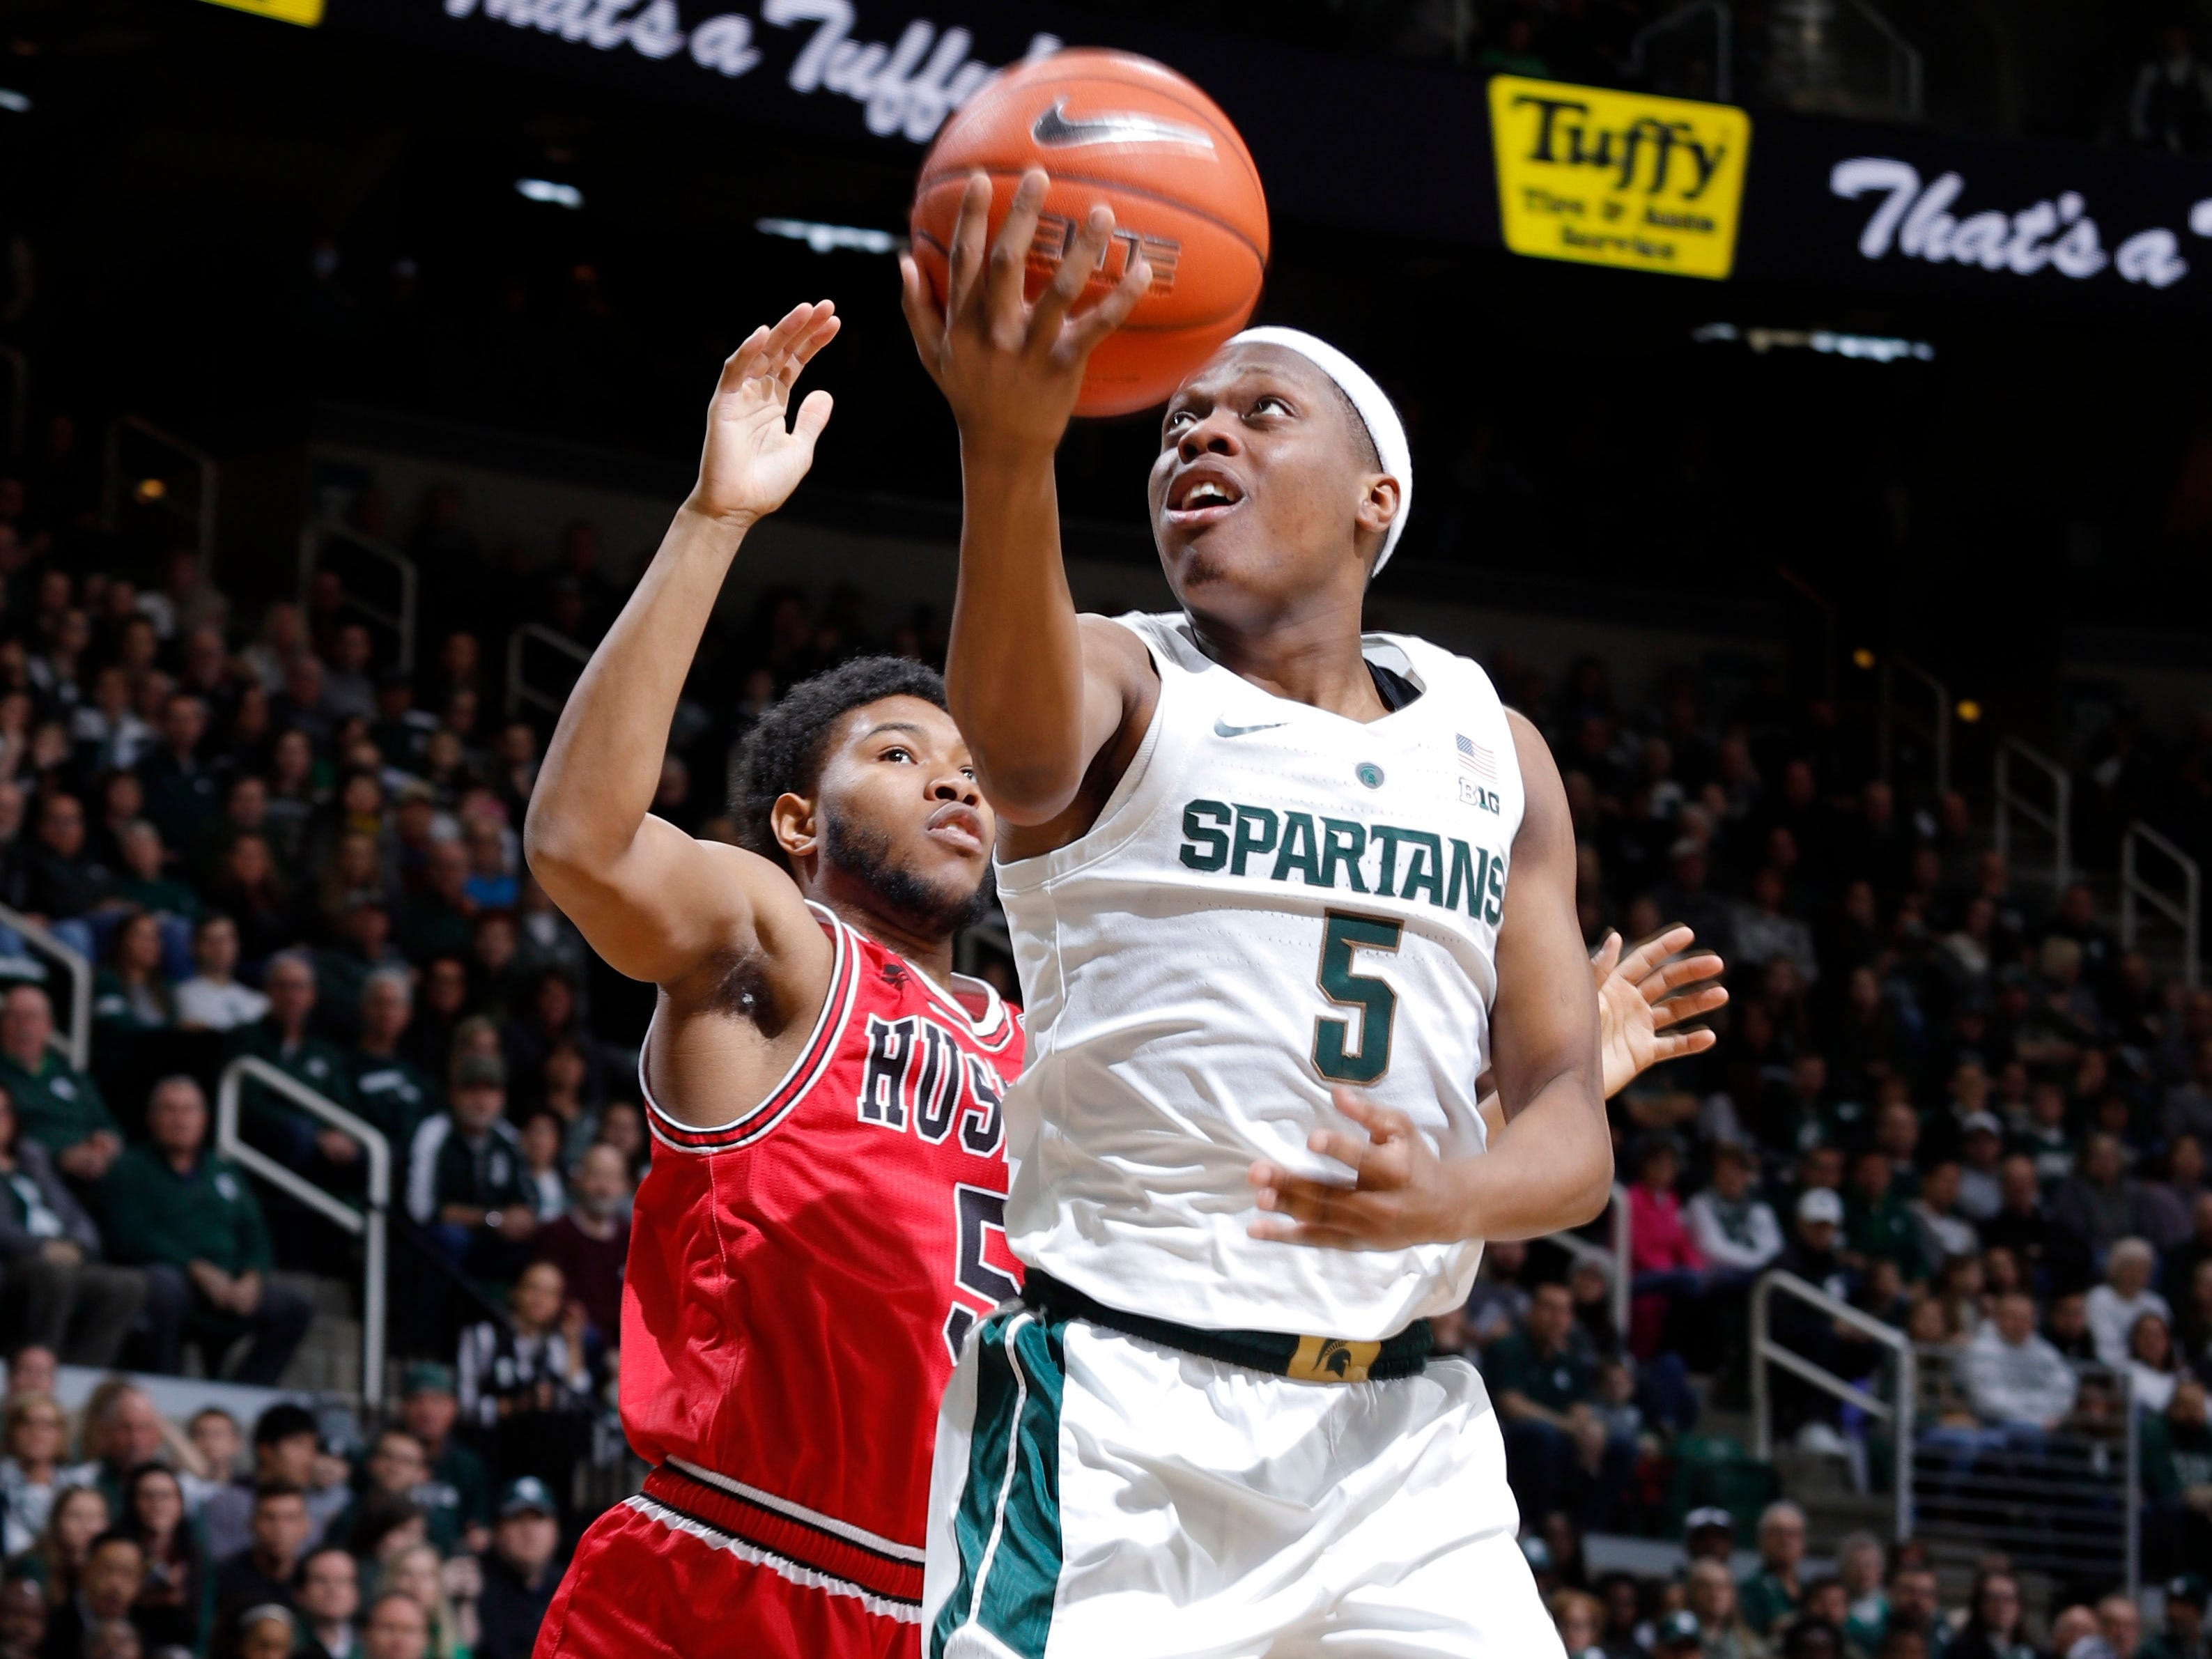 Michigan State's Cassius Winston goes up for a layup against Northern Illinois' Zaire Mateen, Saturday, Dec. 29, 2018, in East Lansing, Mich.